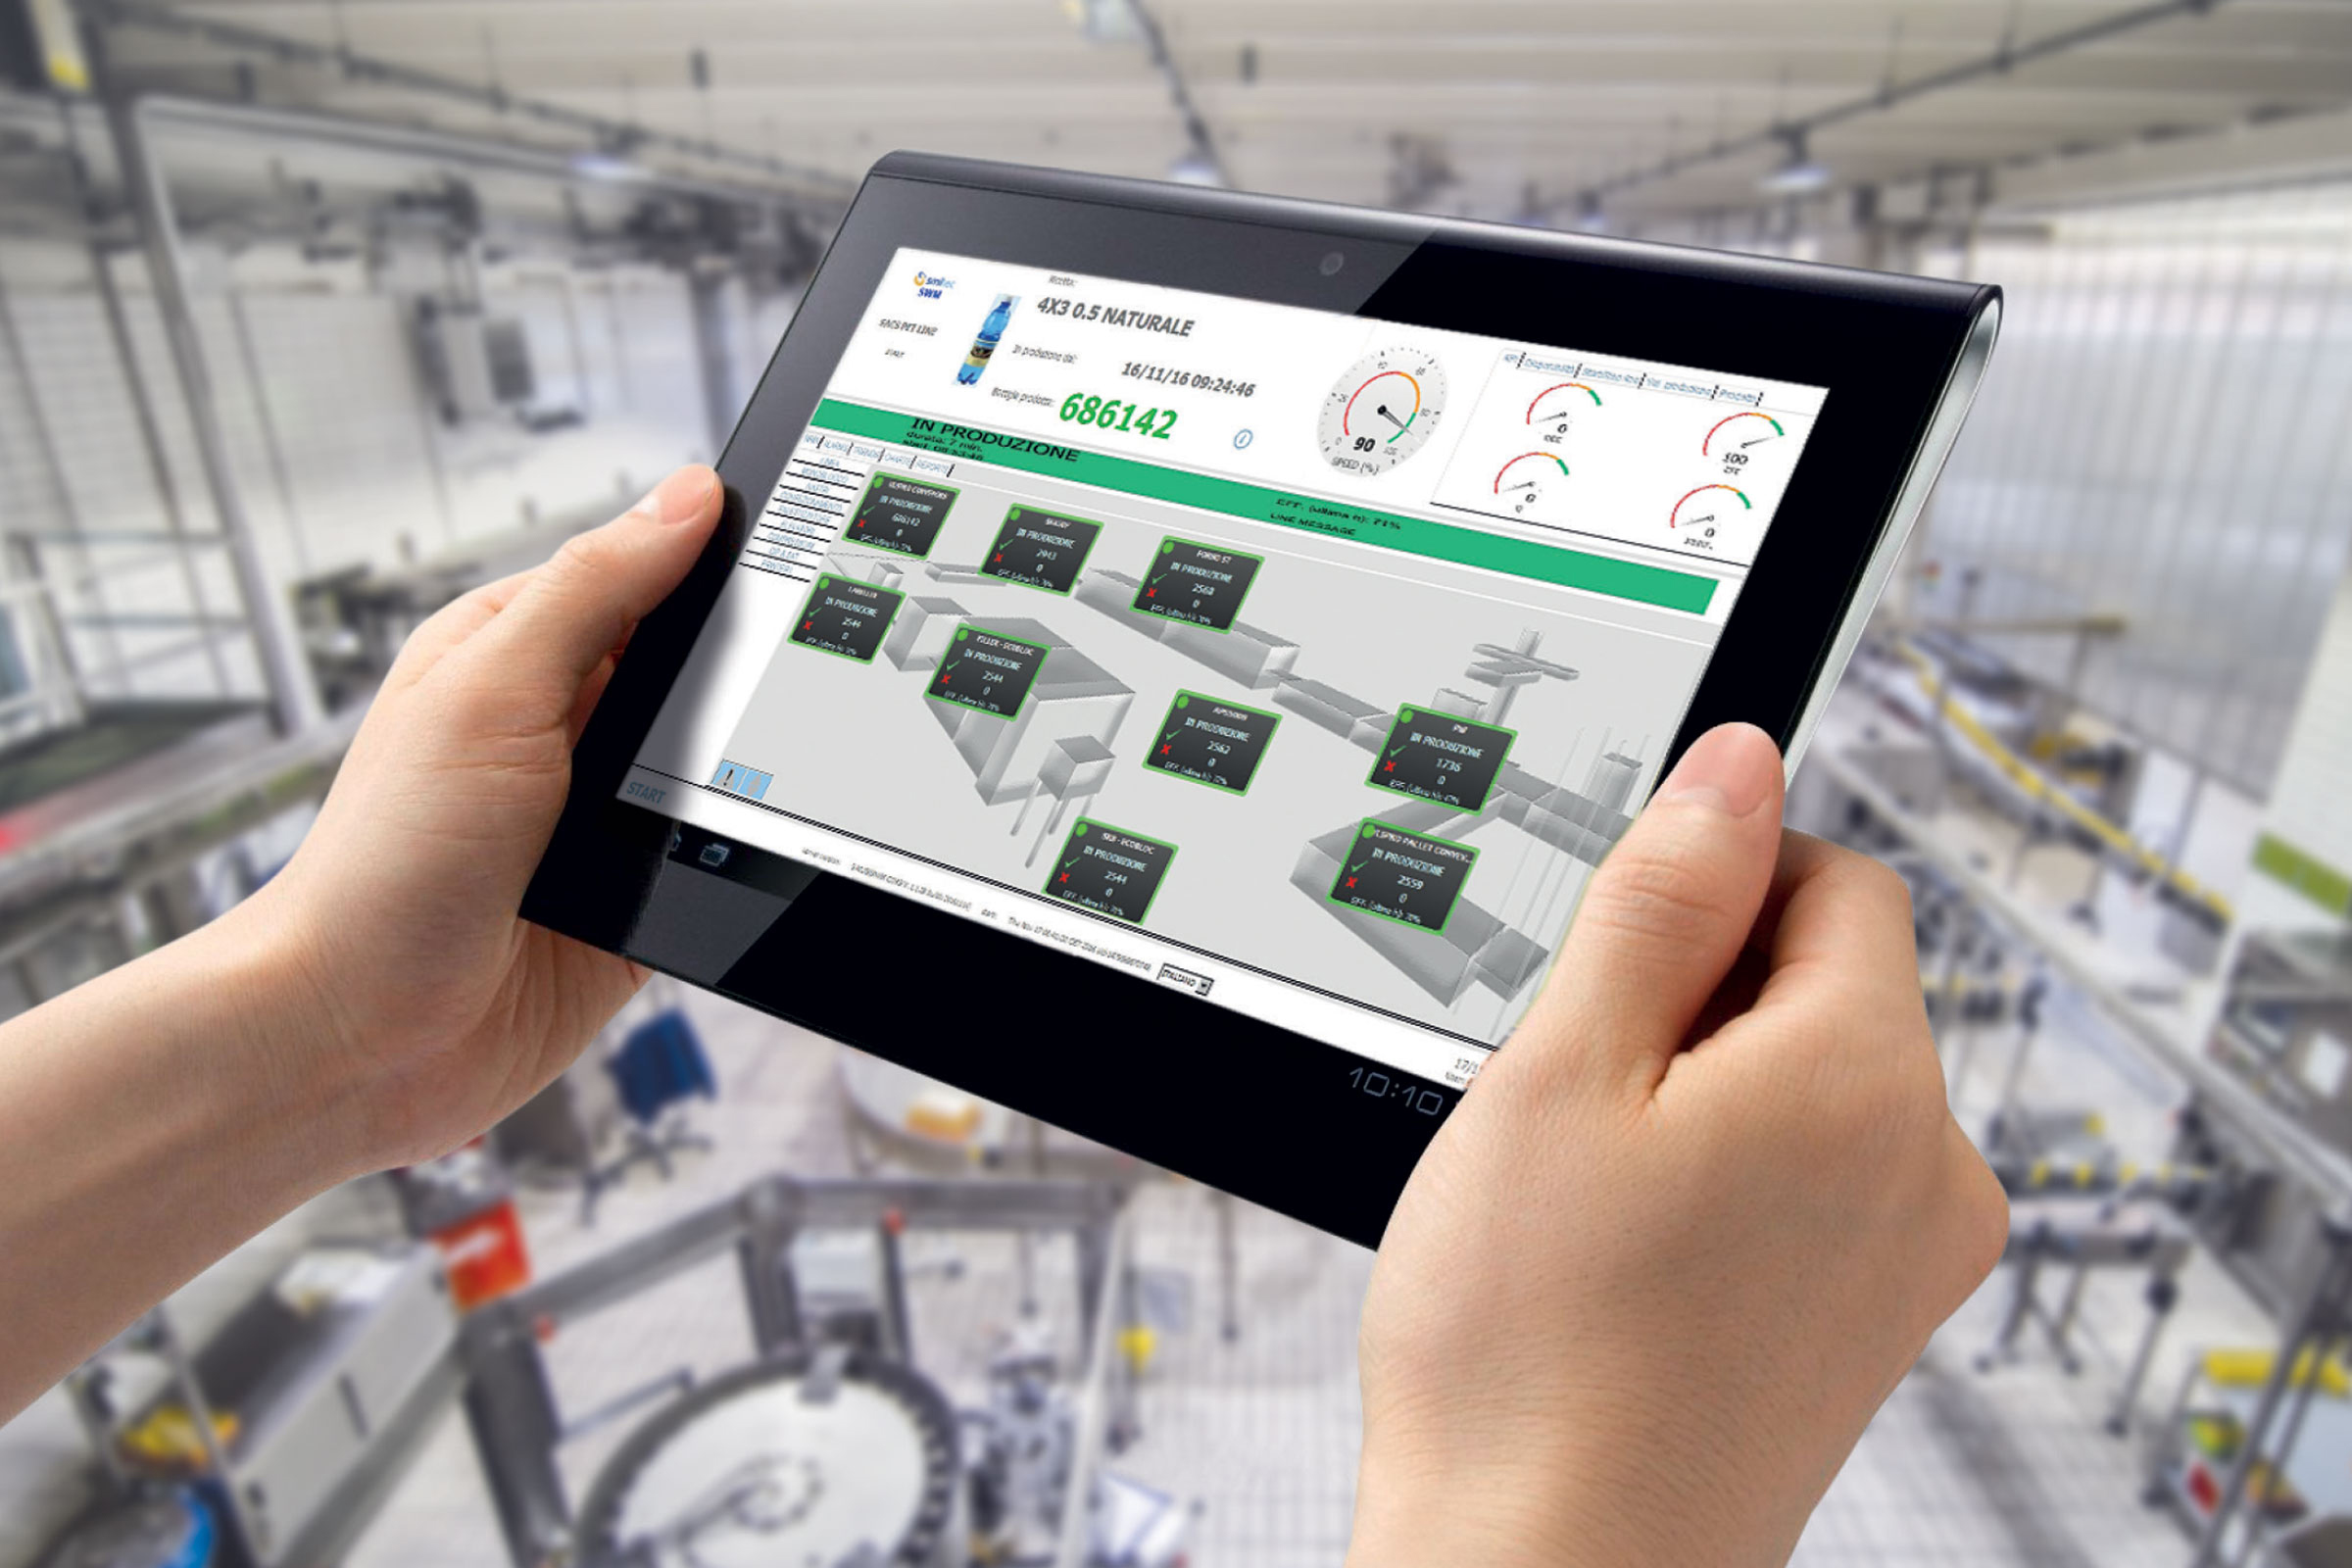 The new age of smart manufacturing